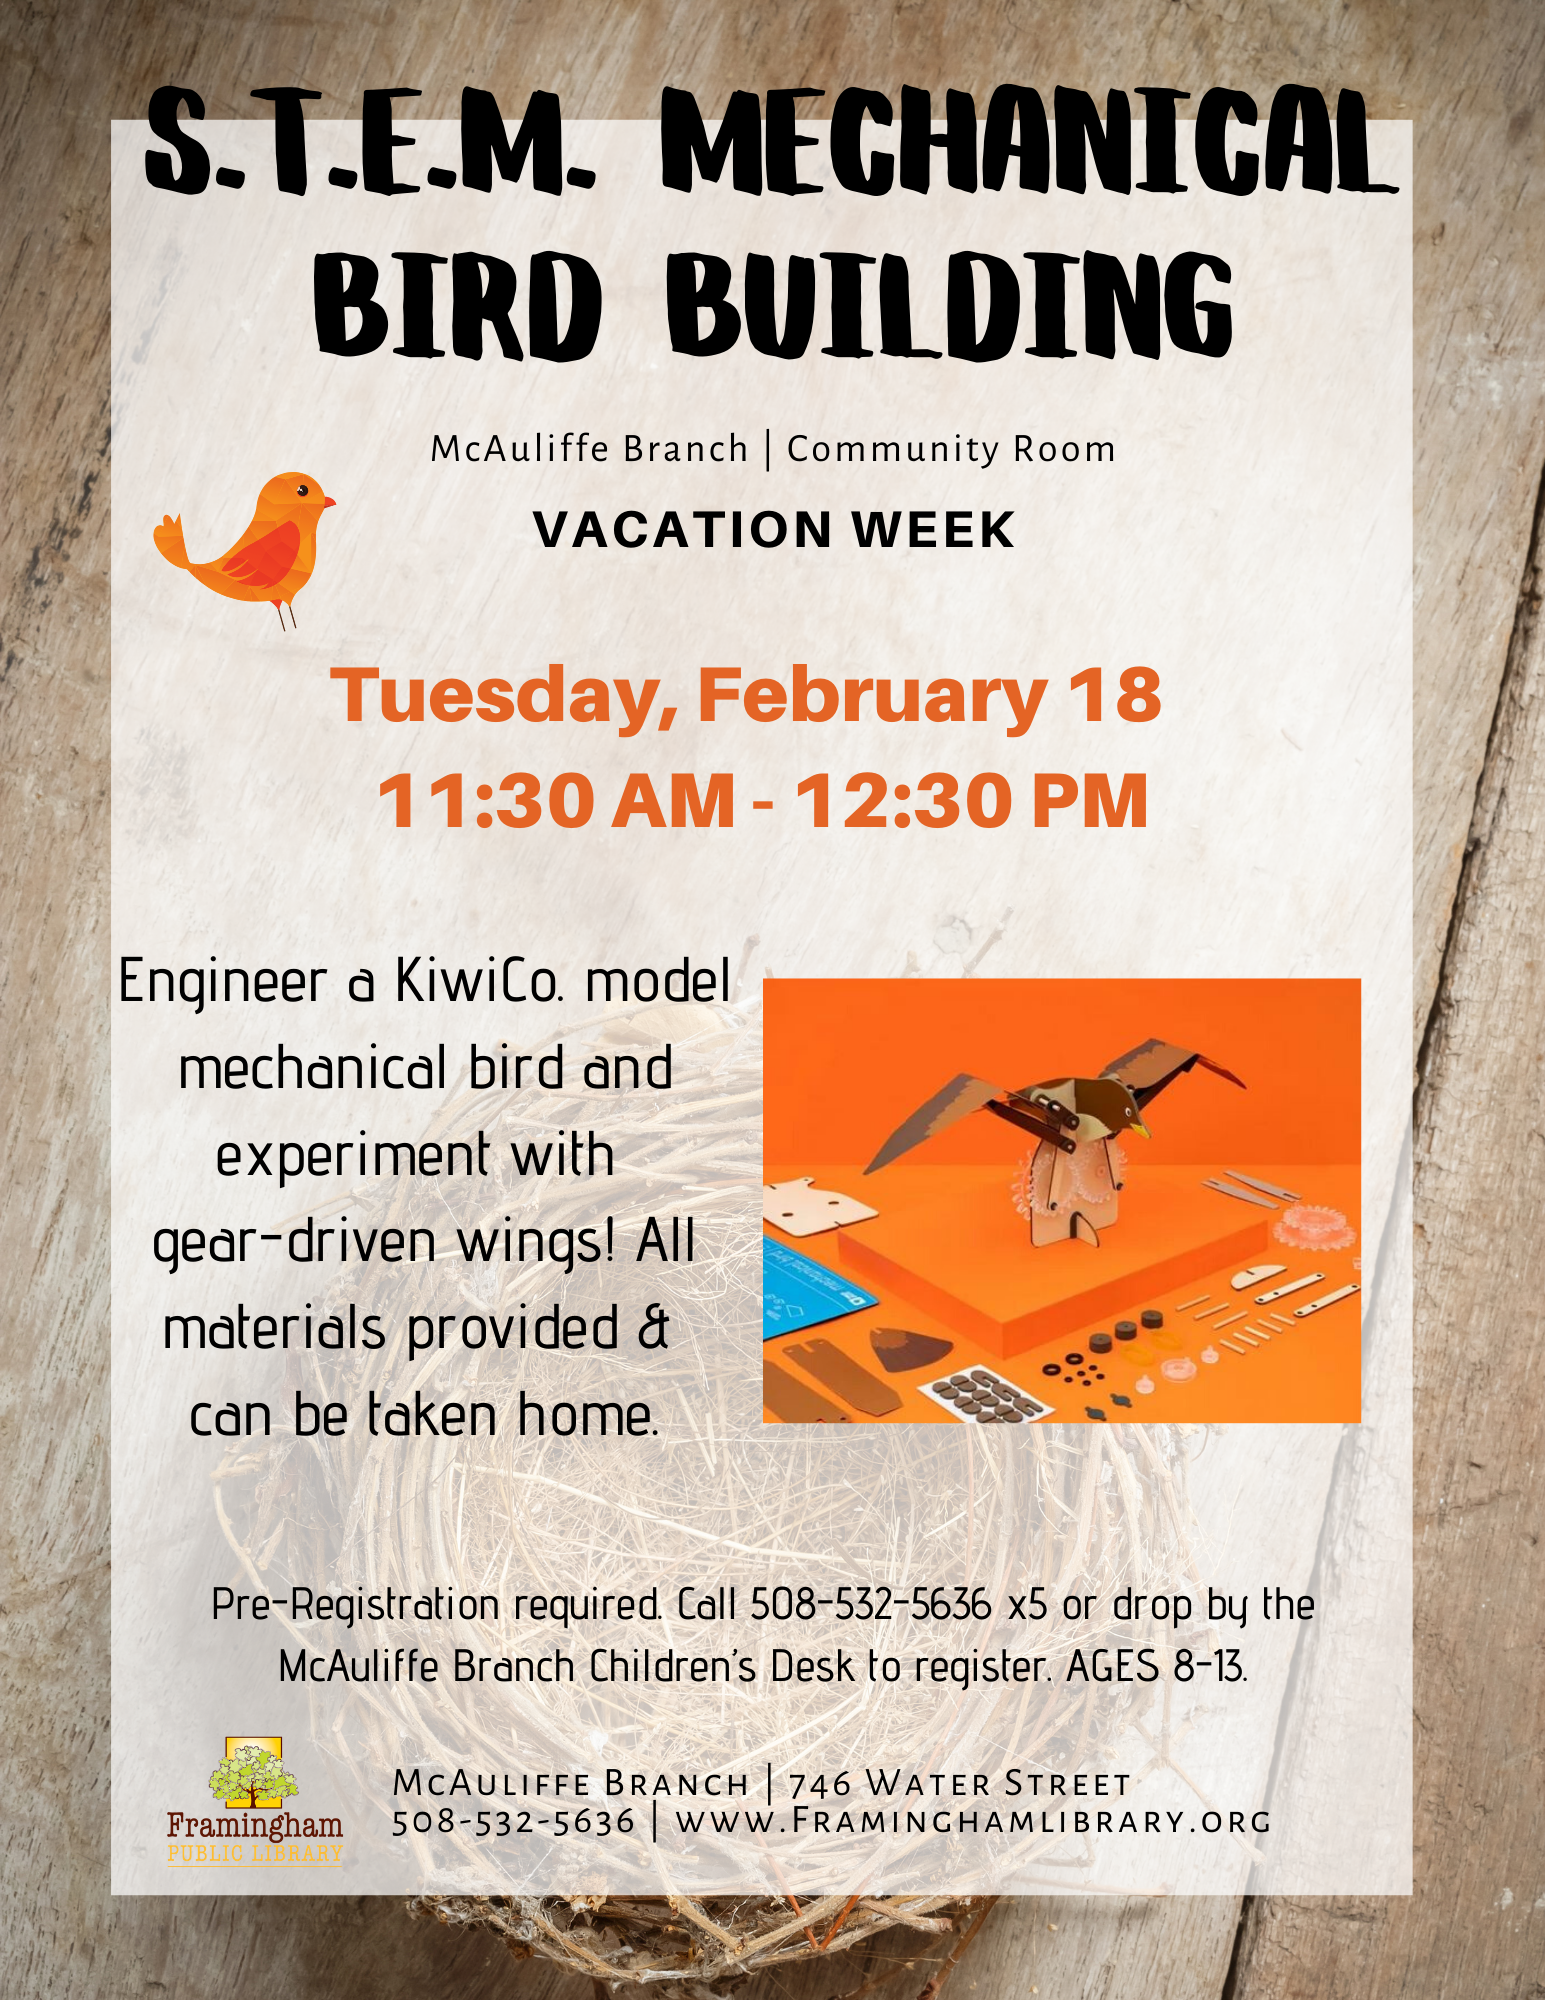 Spark Lab Pop-Up at McAuliffe: S.T.E.M. KiwiCo Mechanical Bird Building thumbnail Photo